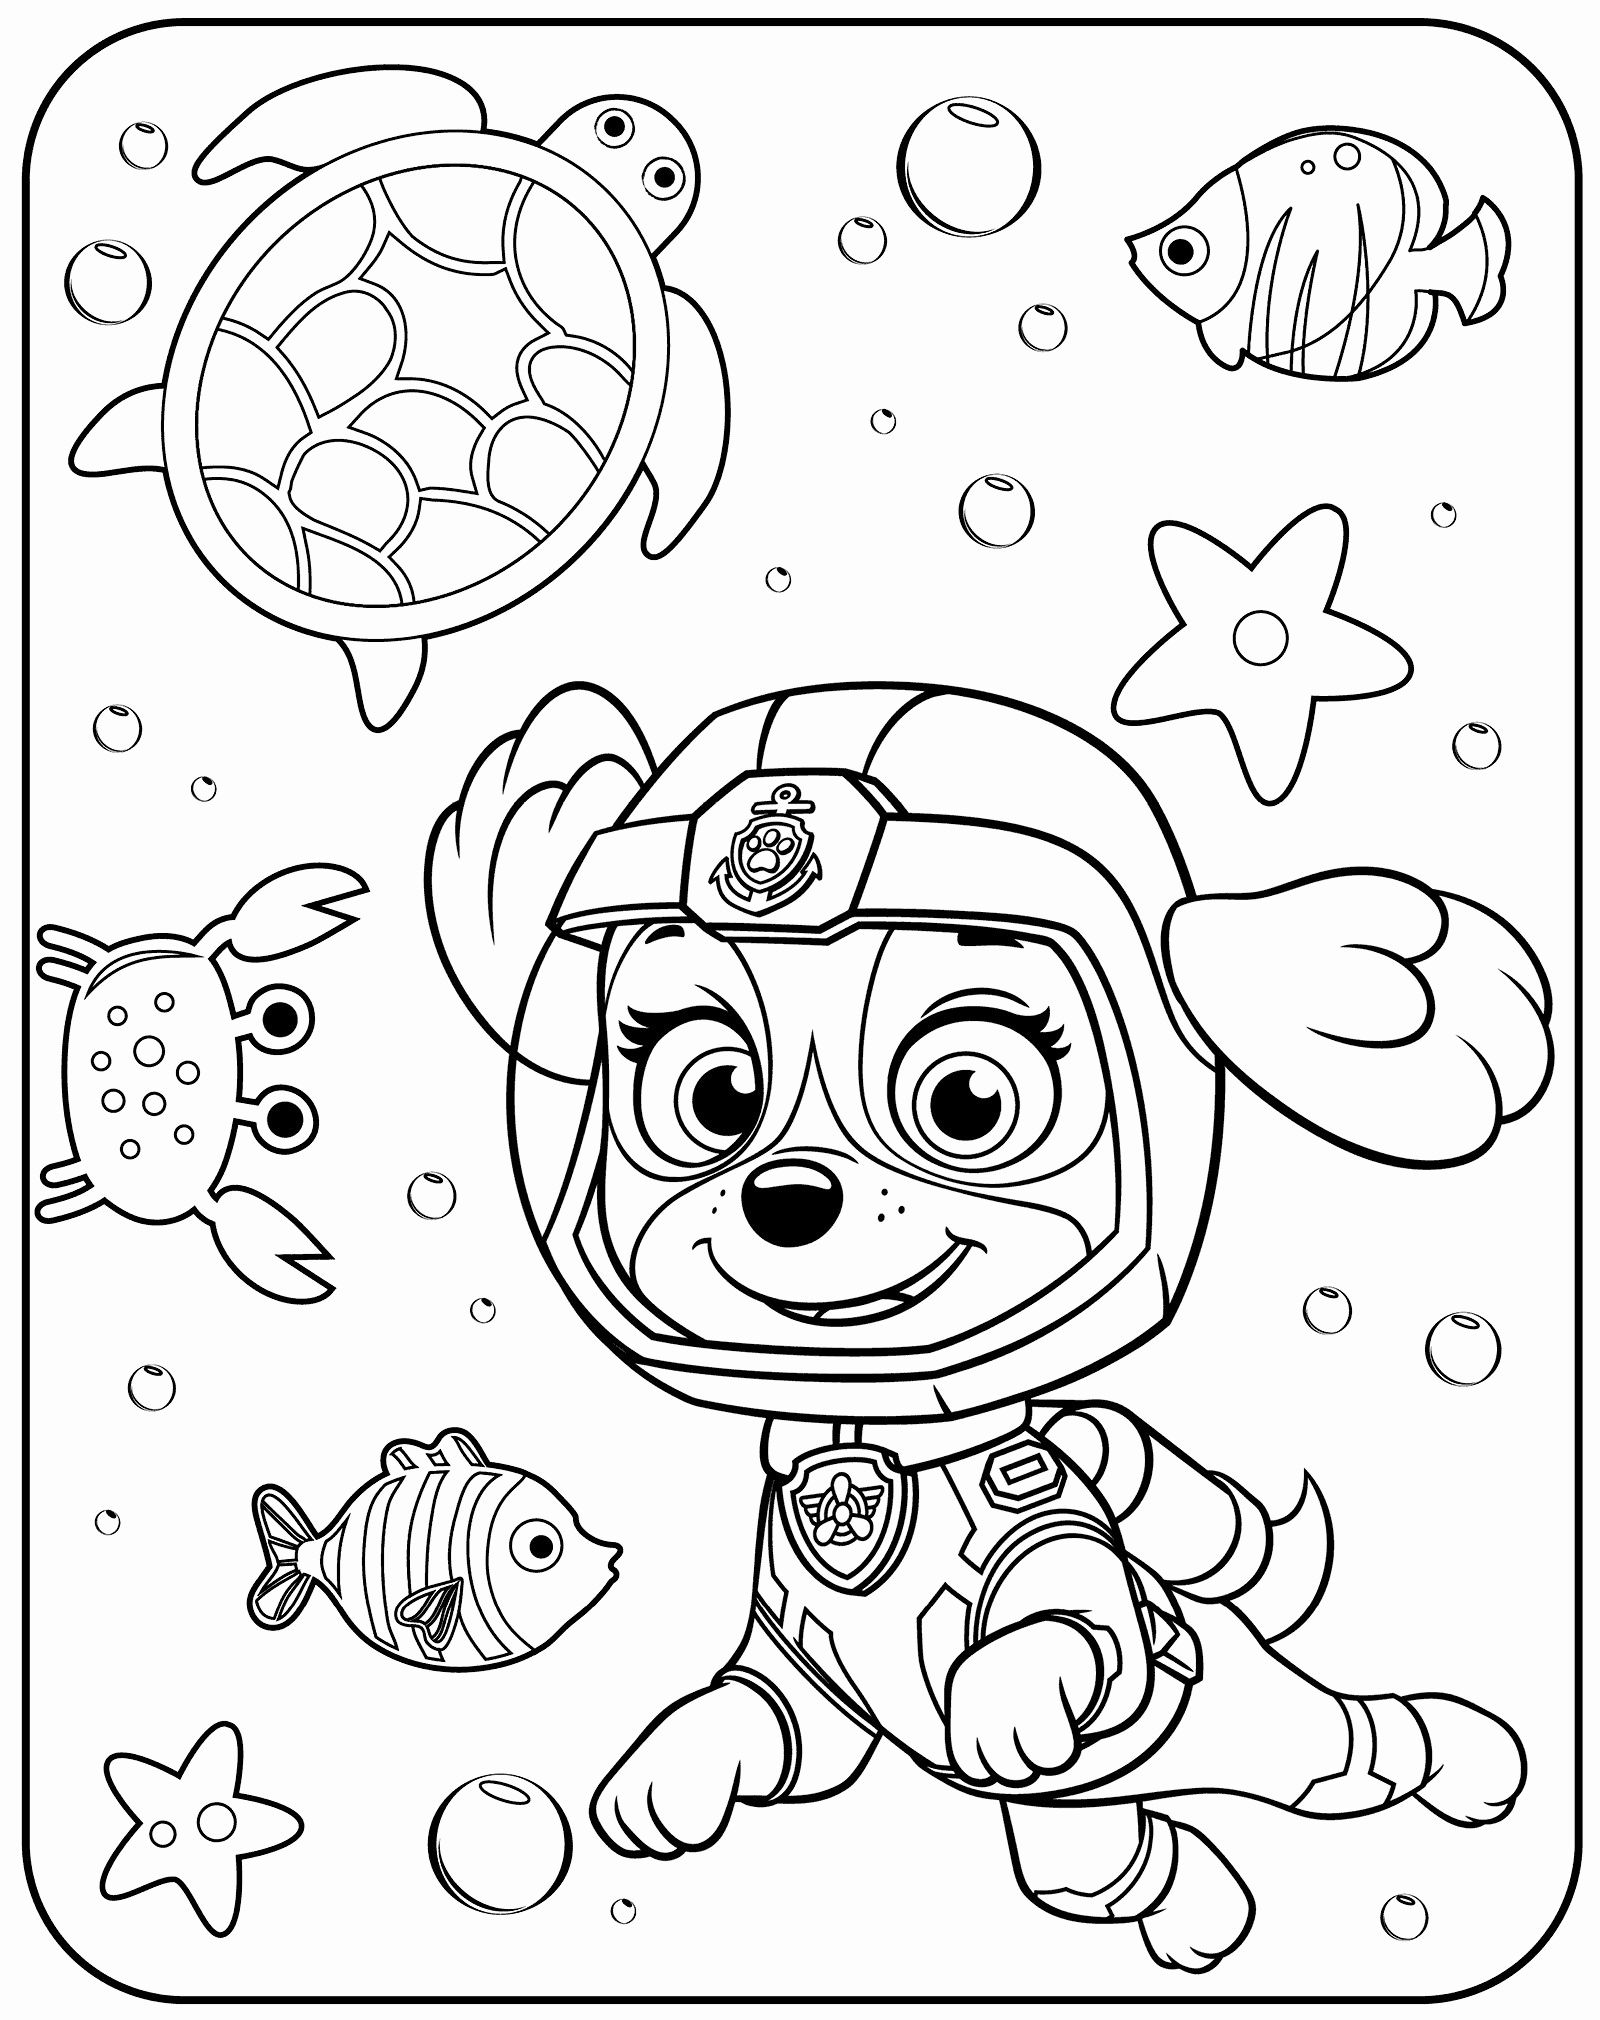 73 Awesome Photos Of Paw Patrol Coloring Sheets Paw Patrol Coloring Pages Paw Patrol Coloring Birthday Coloring Pages